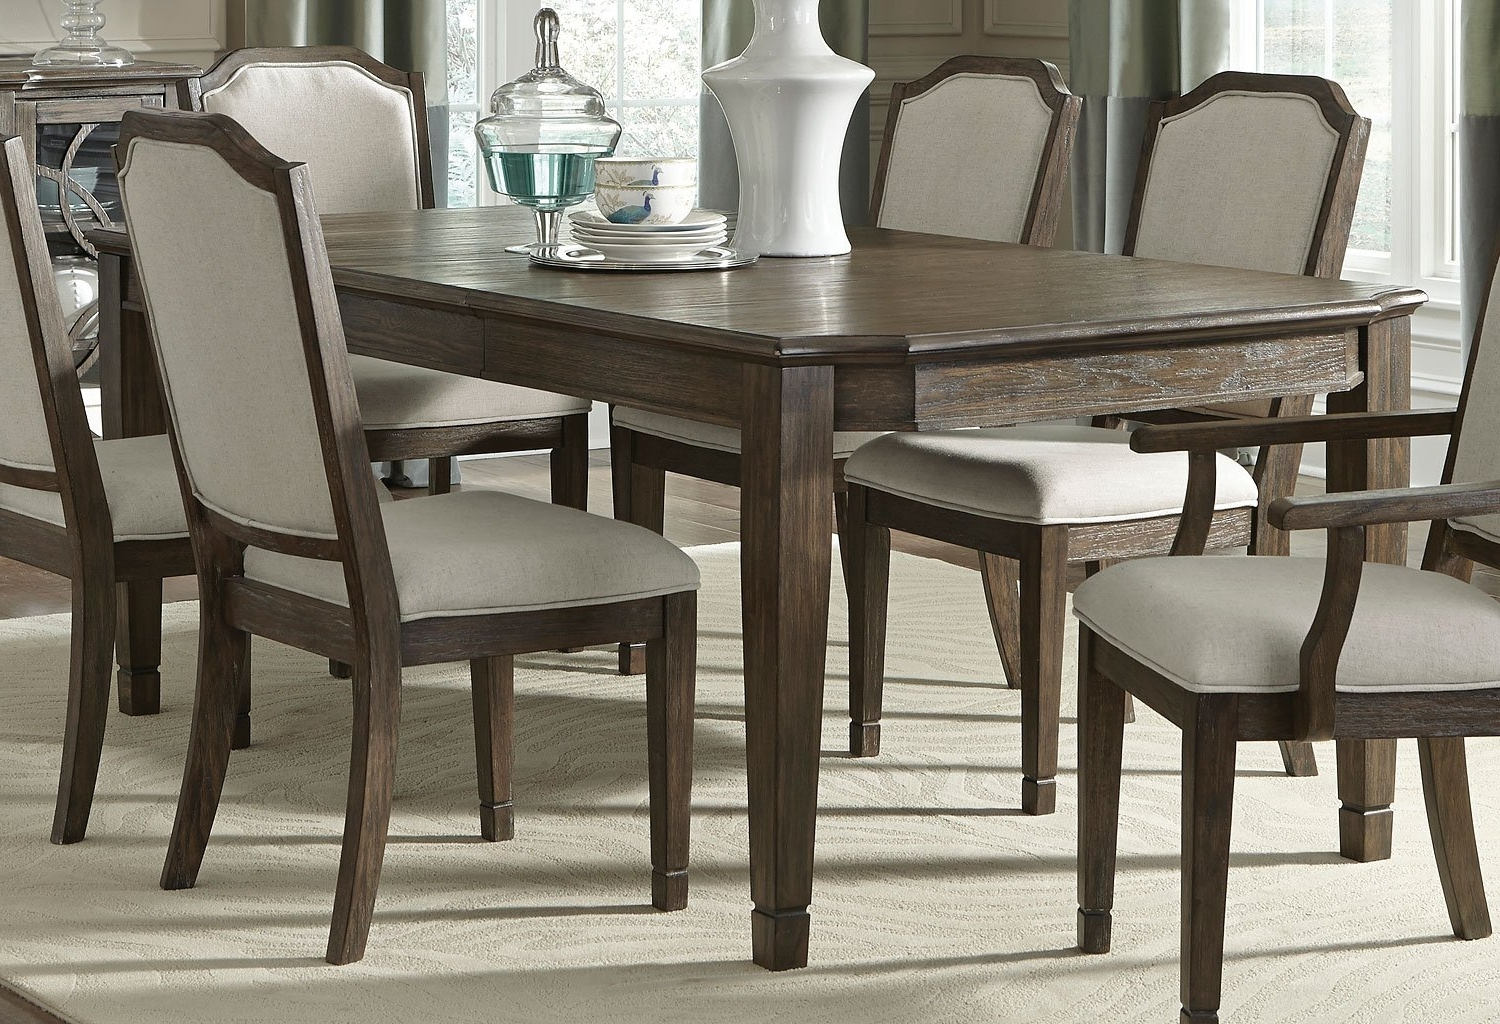 Hamilton Dining Tables In Most Recent Hamilton Dining Table Samuel Lawrence Furniture (Gallery 7 of 25)